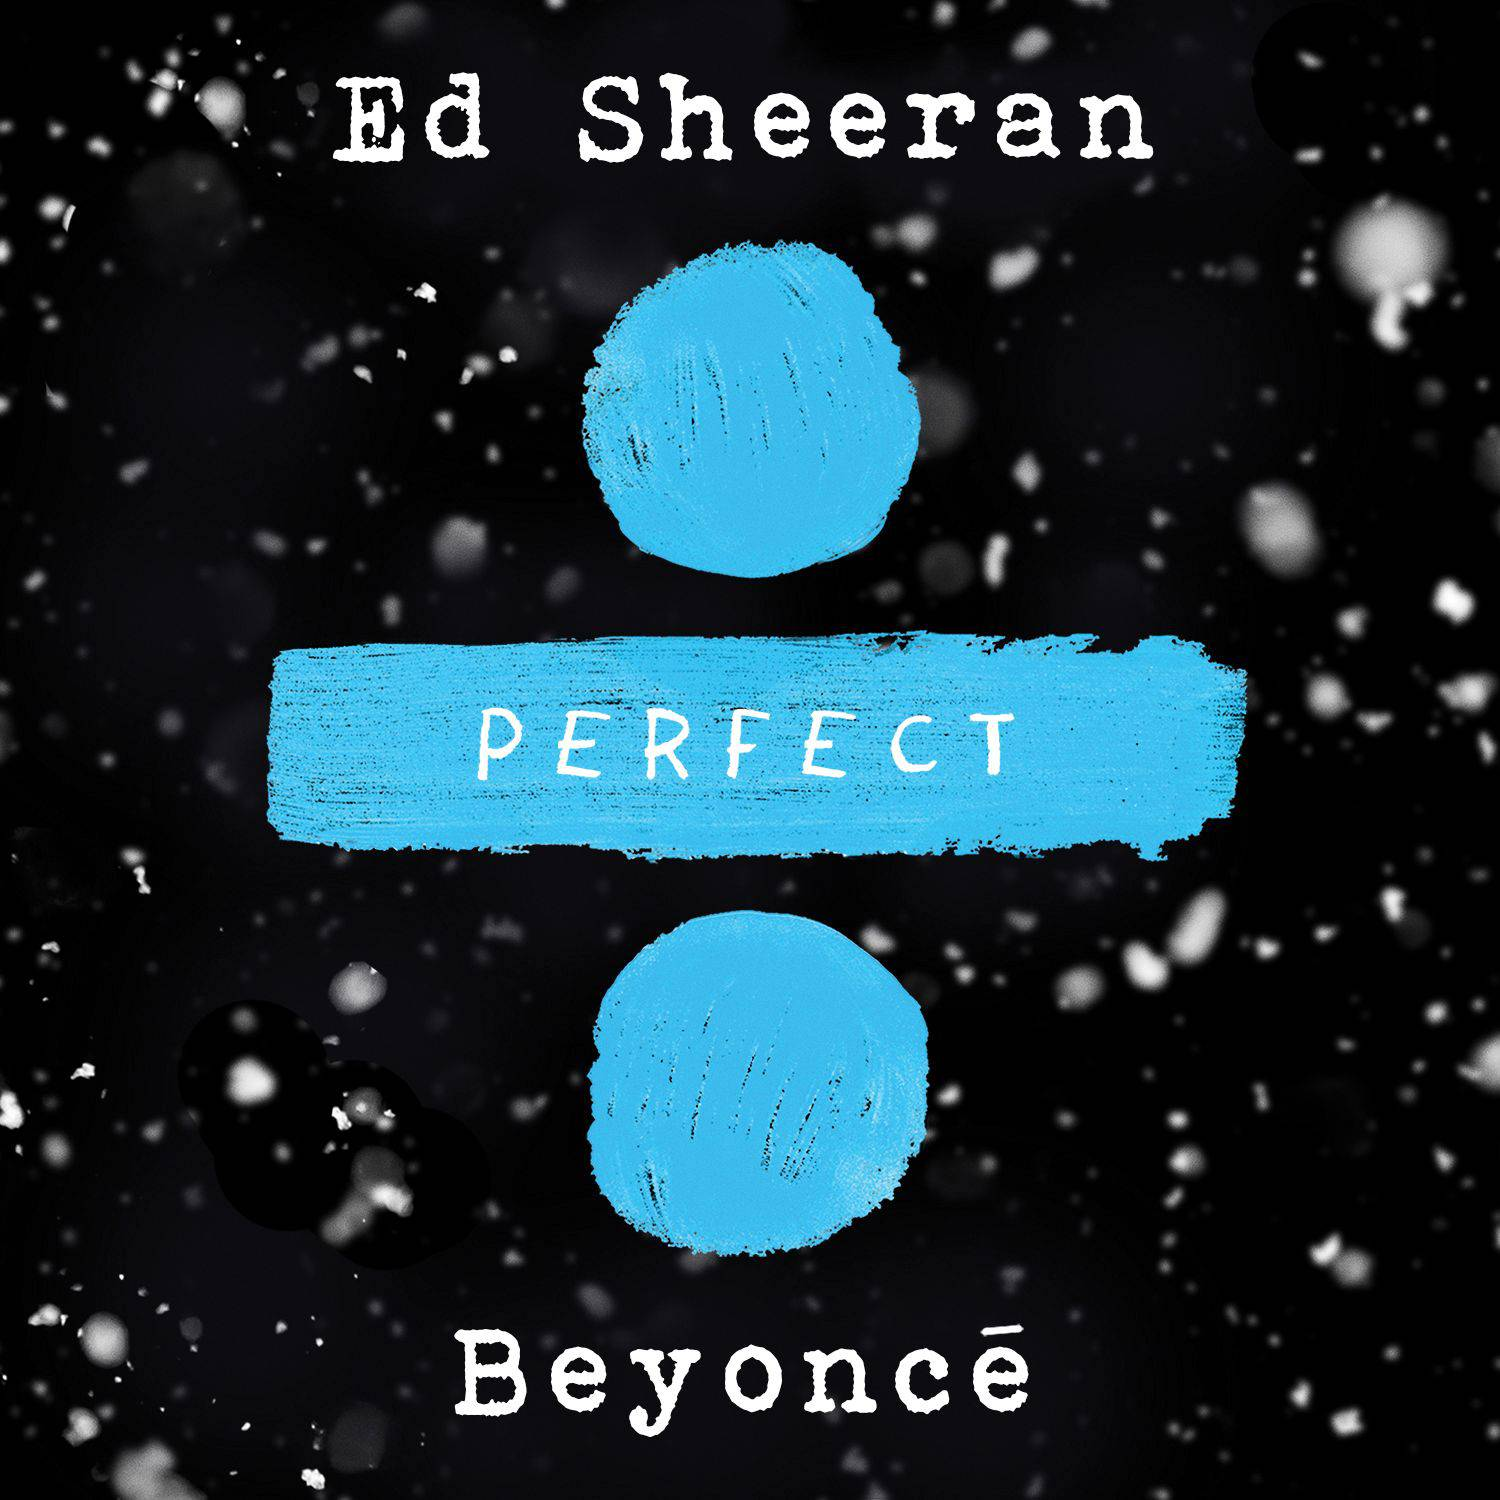 Ed Sheeran - Perfect Duet (feat. Beyoncé)